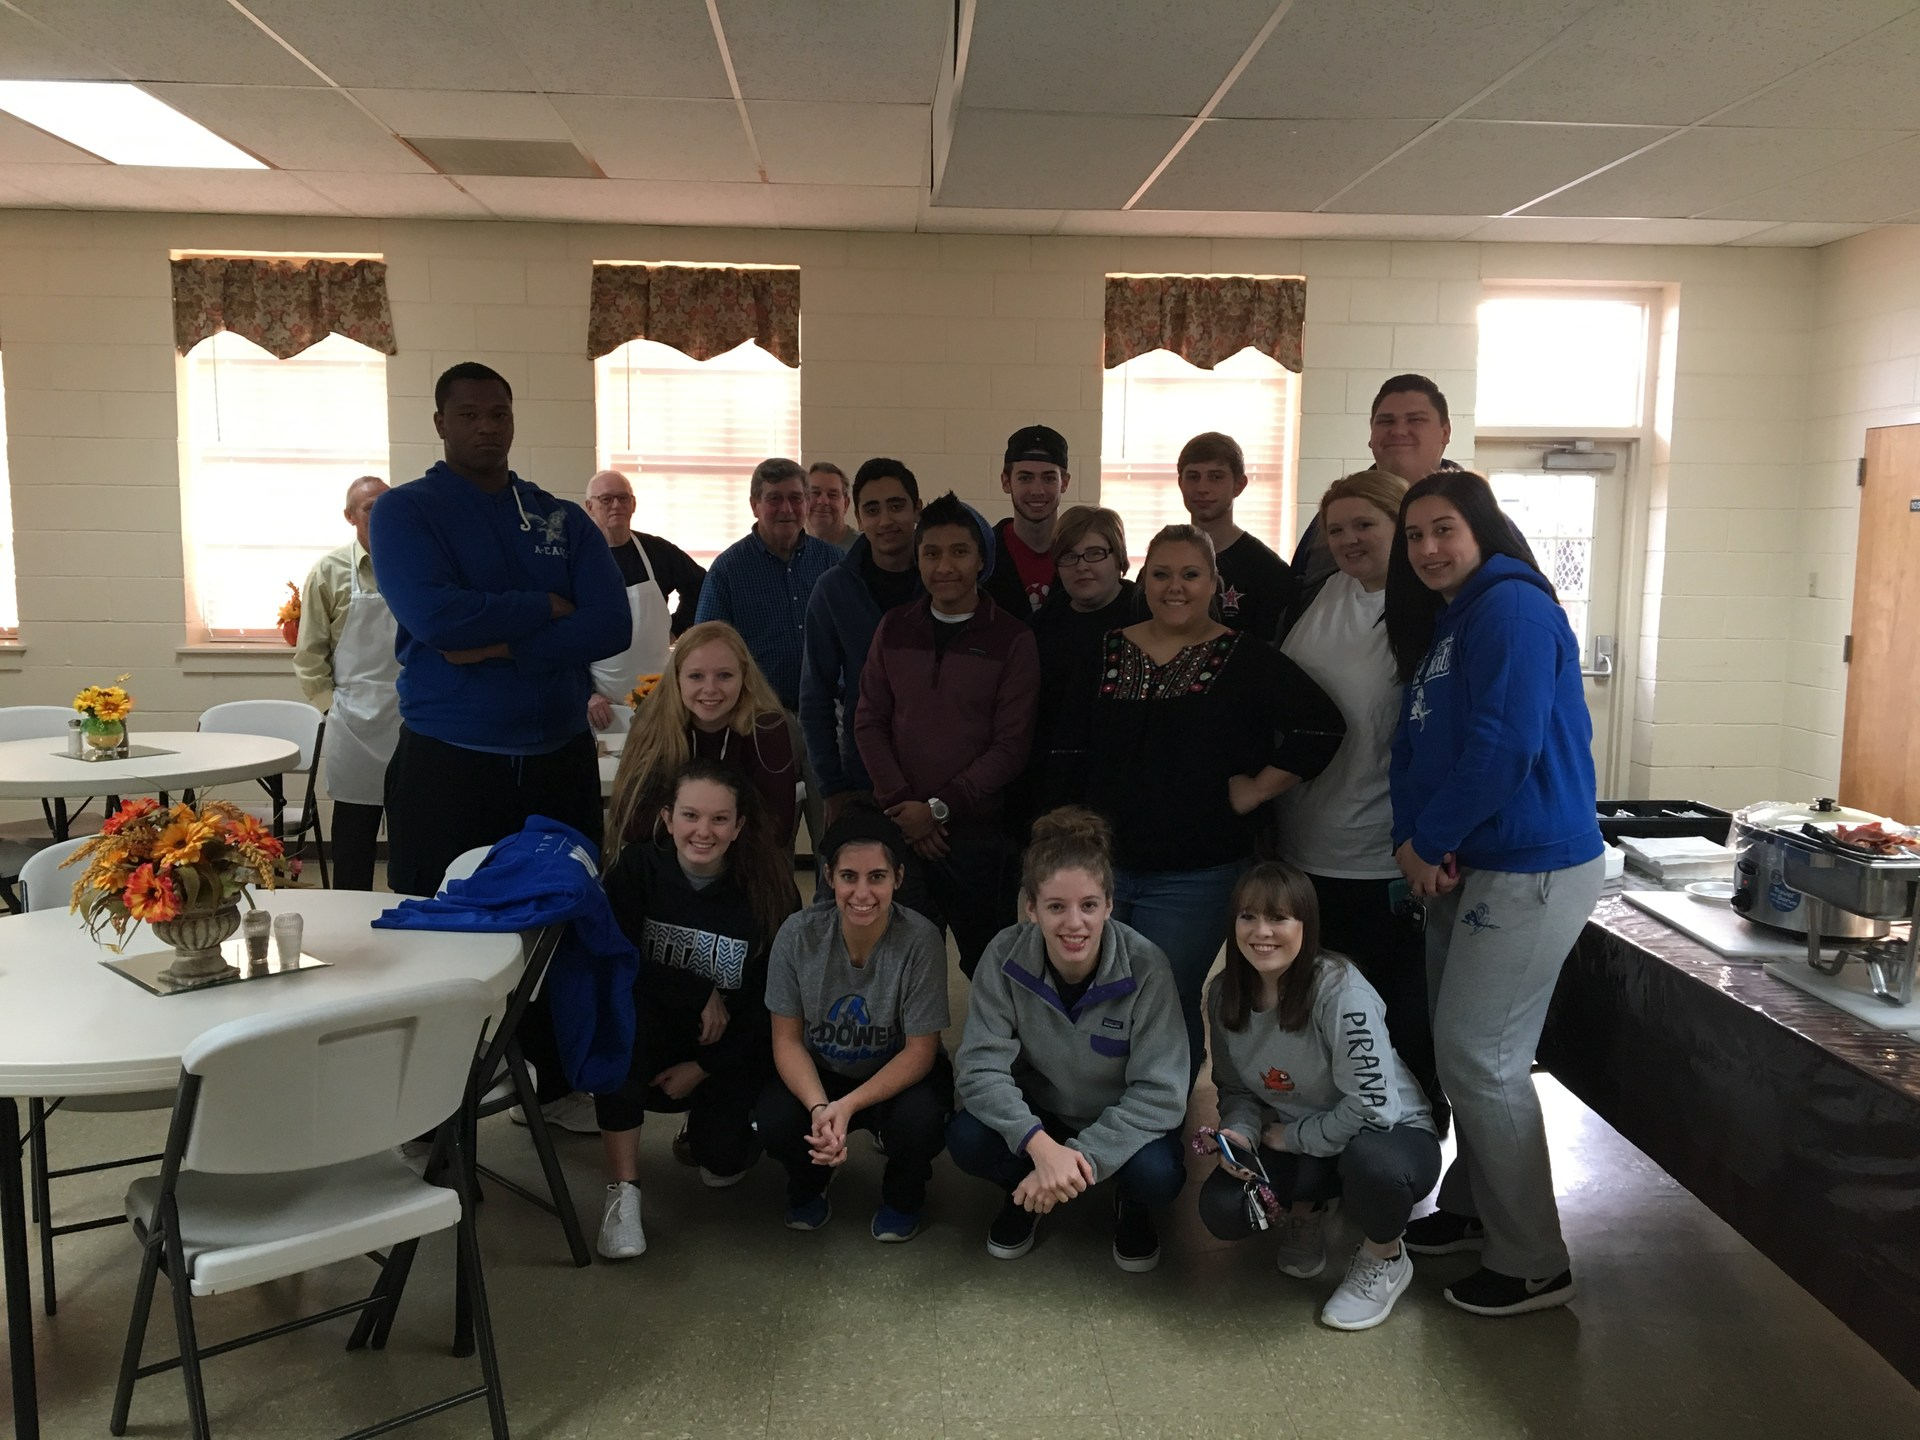 Thank you PG Baptist for breakfast for our PGC leaders before the mid year retreat